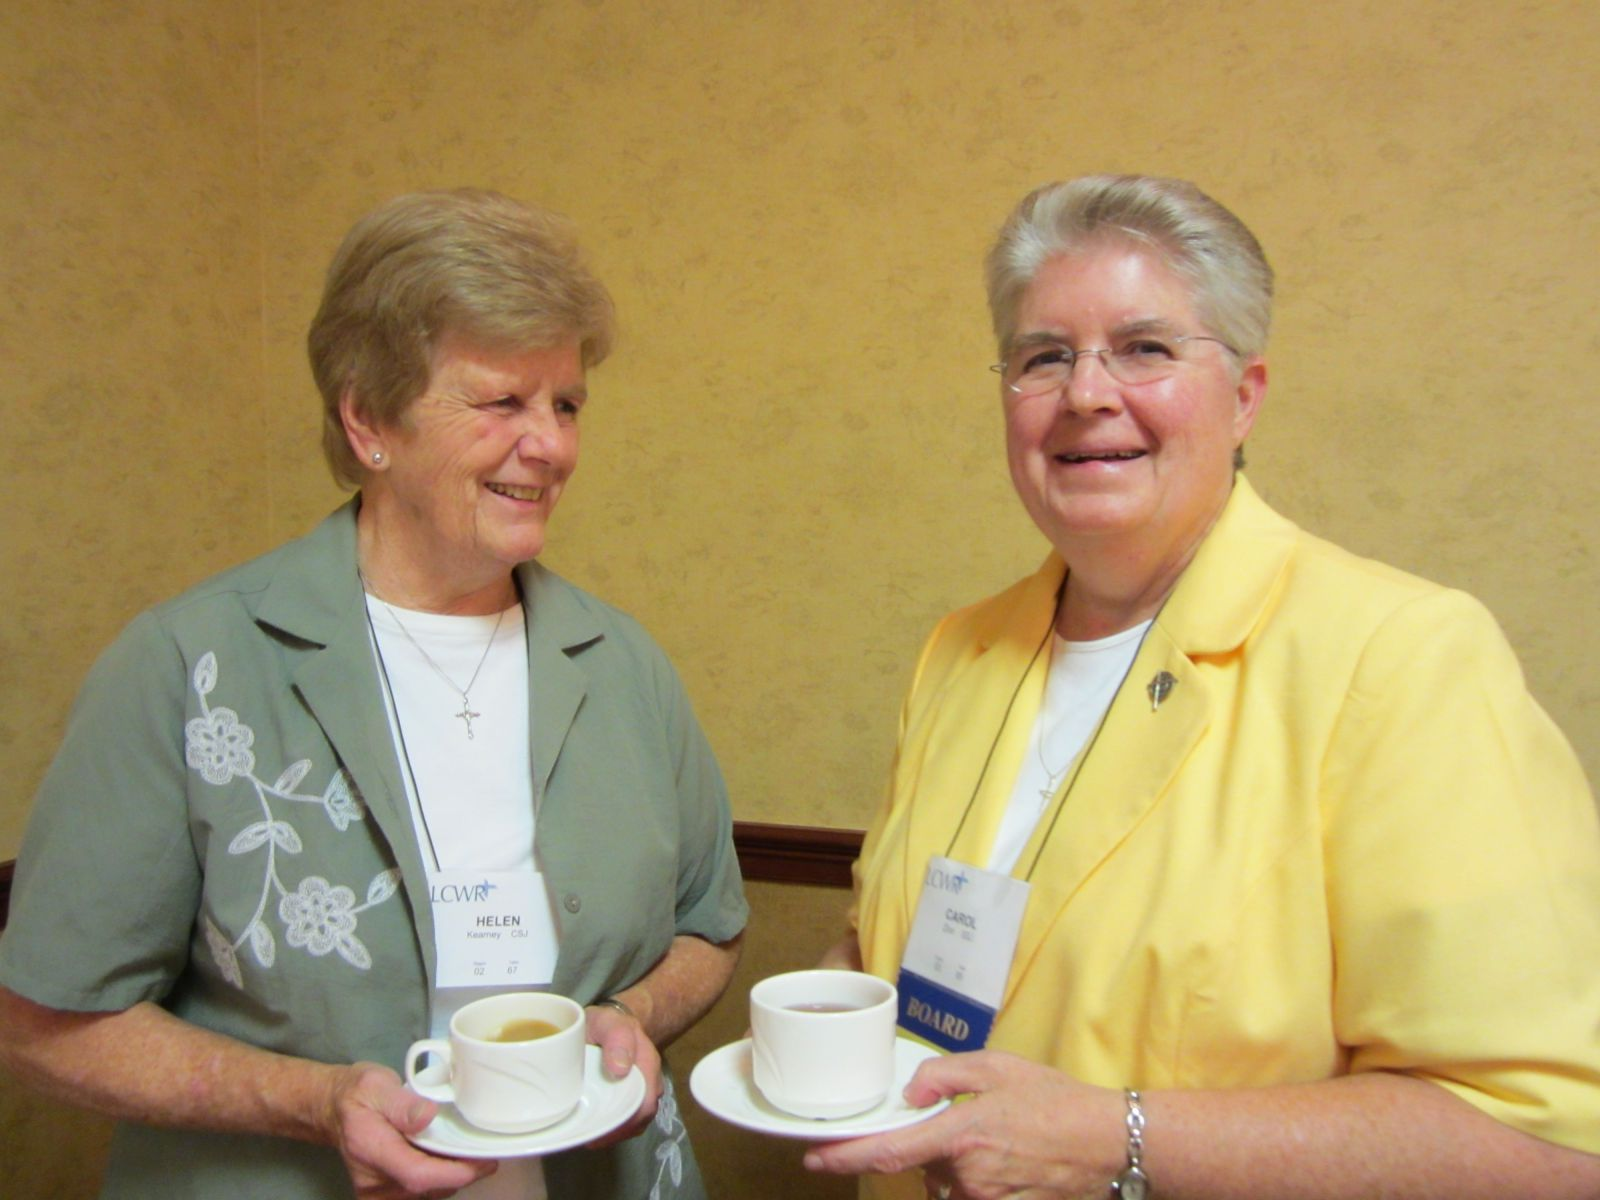 Sr. Helen Kearney with Sr. Carol Zinn at her first LCWR assembly Aug. 9 2009.